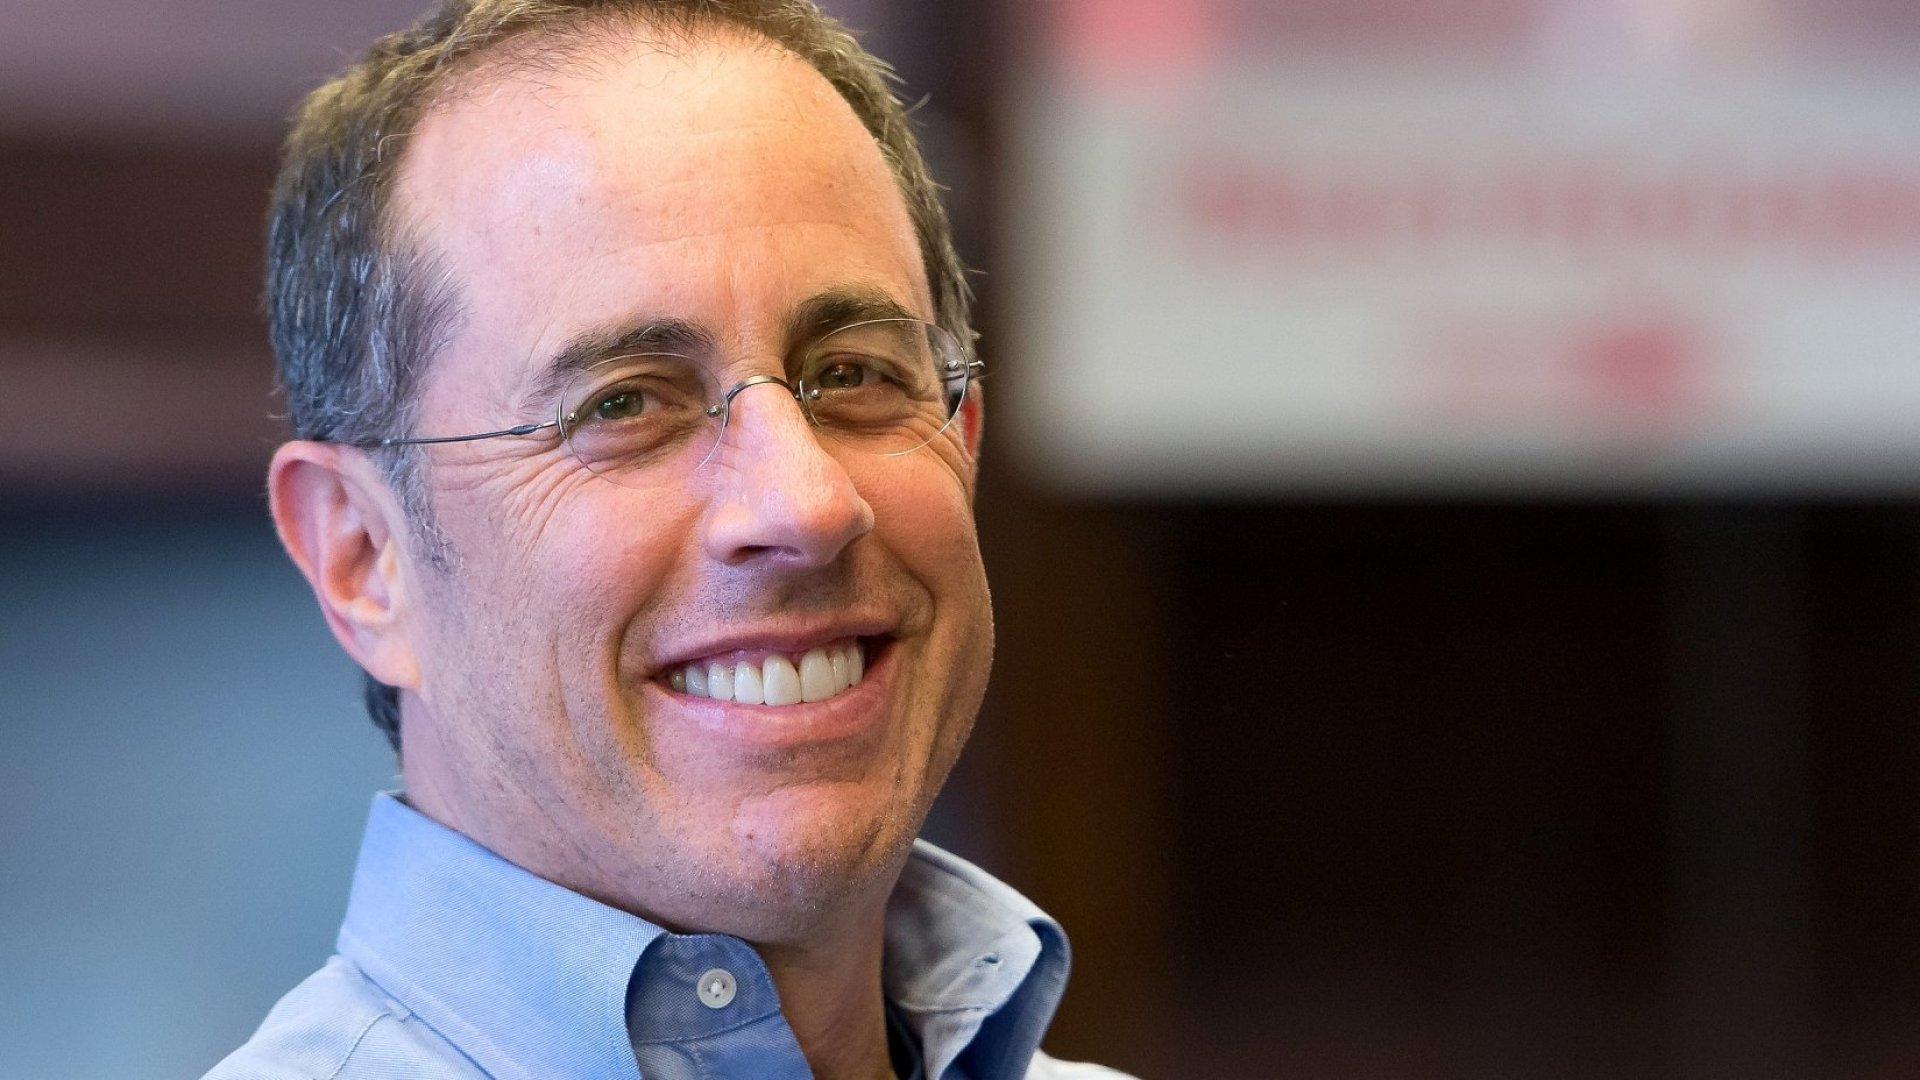 With a Net Worth of $950 Million, Why Does Jerry Seinfeld Still Work So Hard? His Response Is a Master Class in Achieving Incredible Success